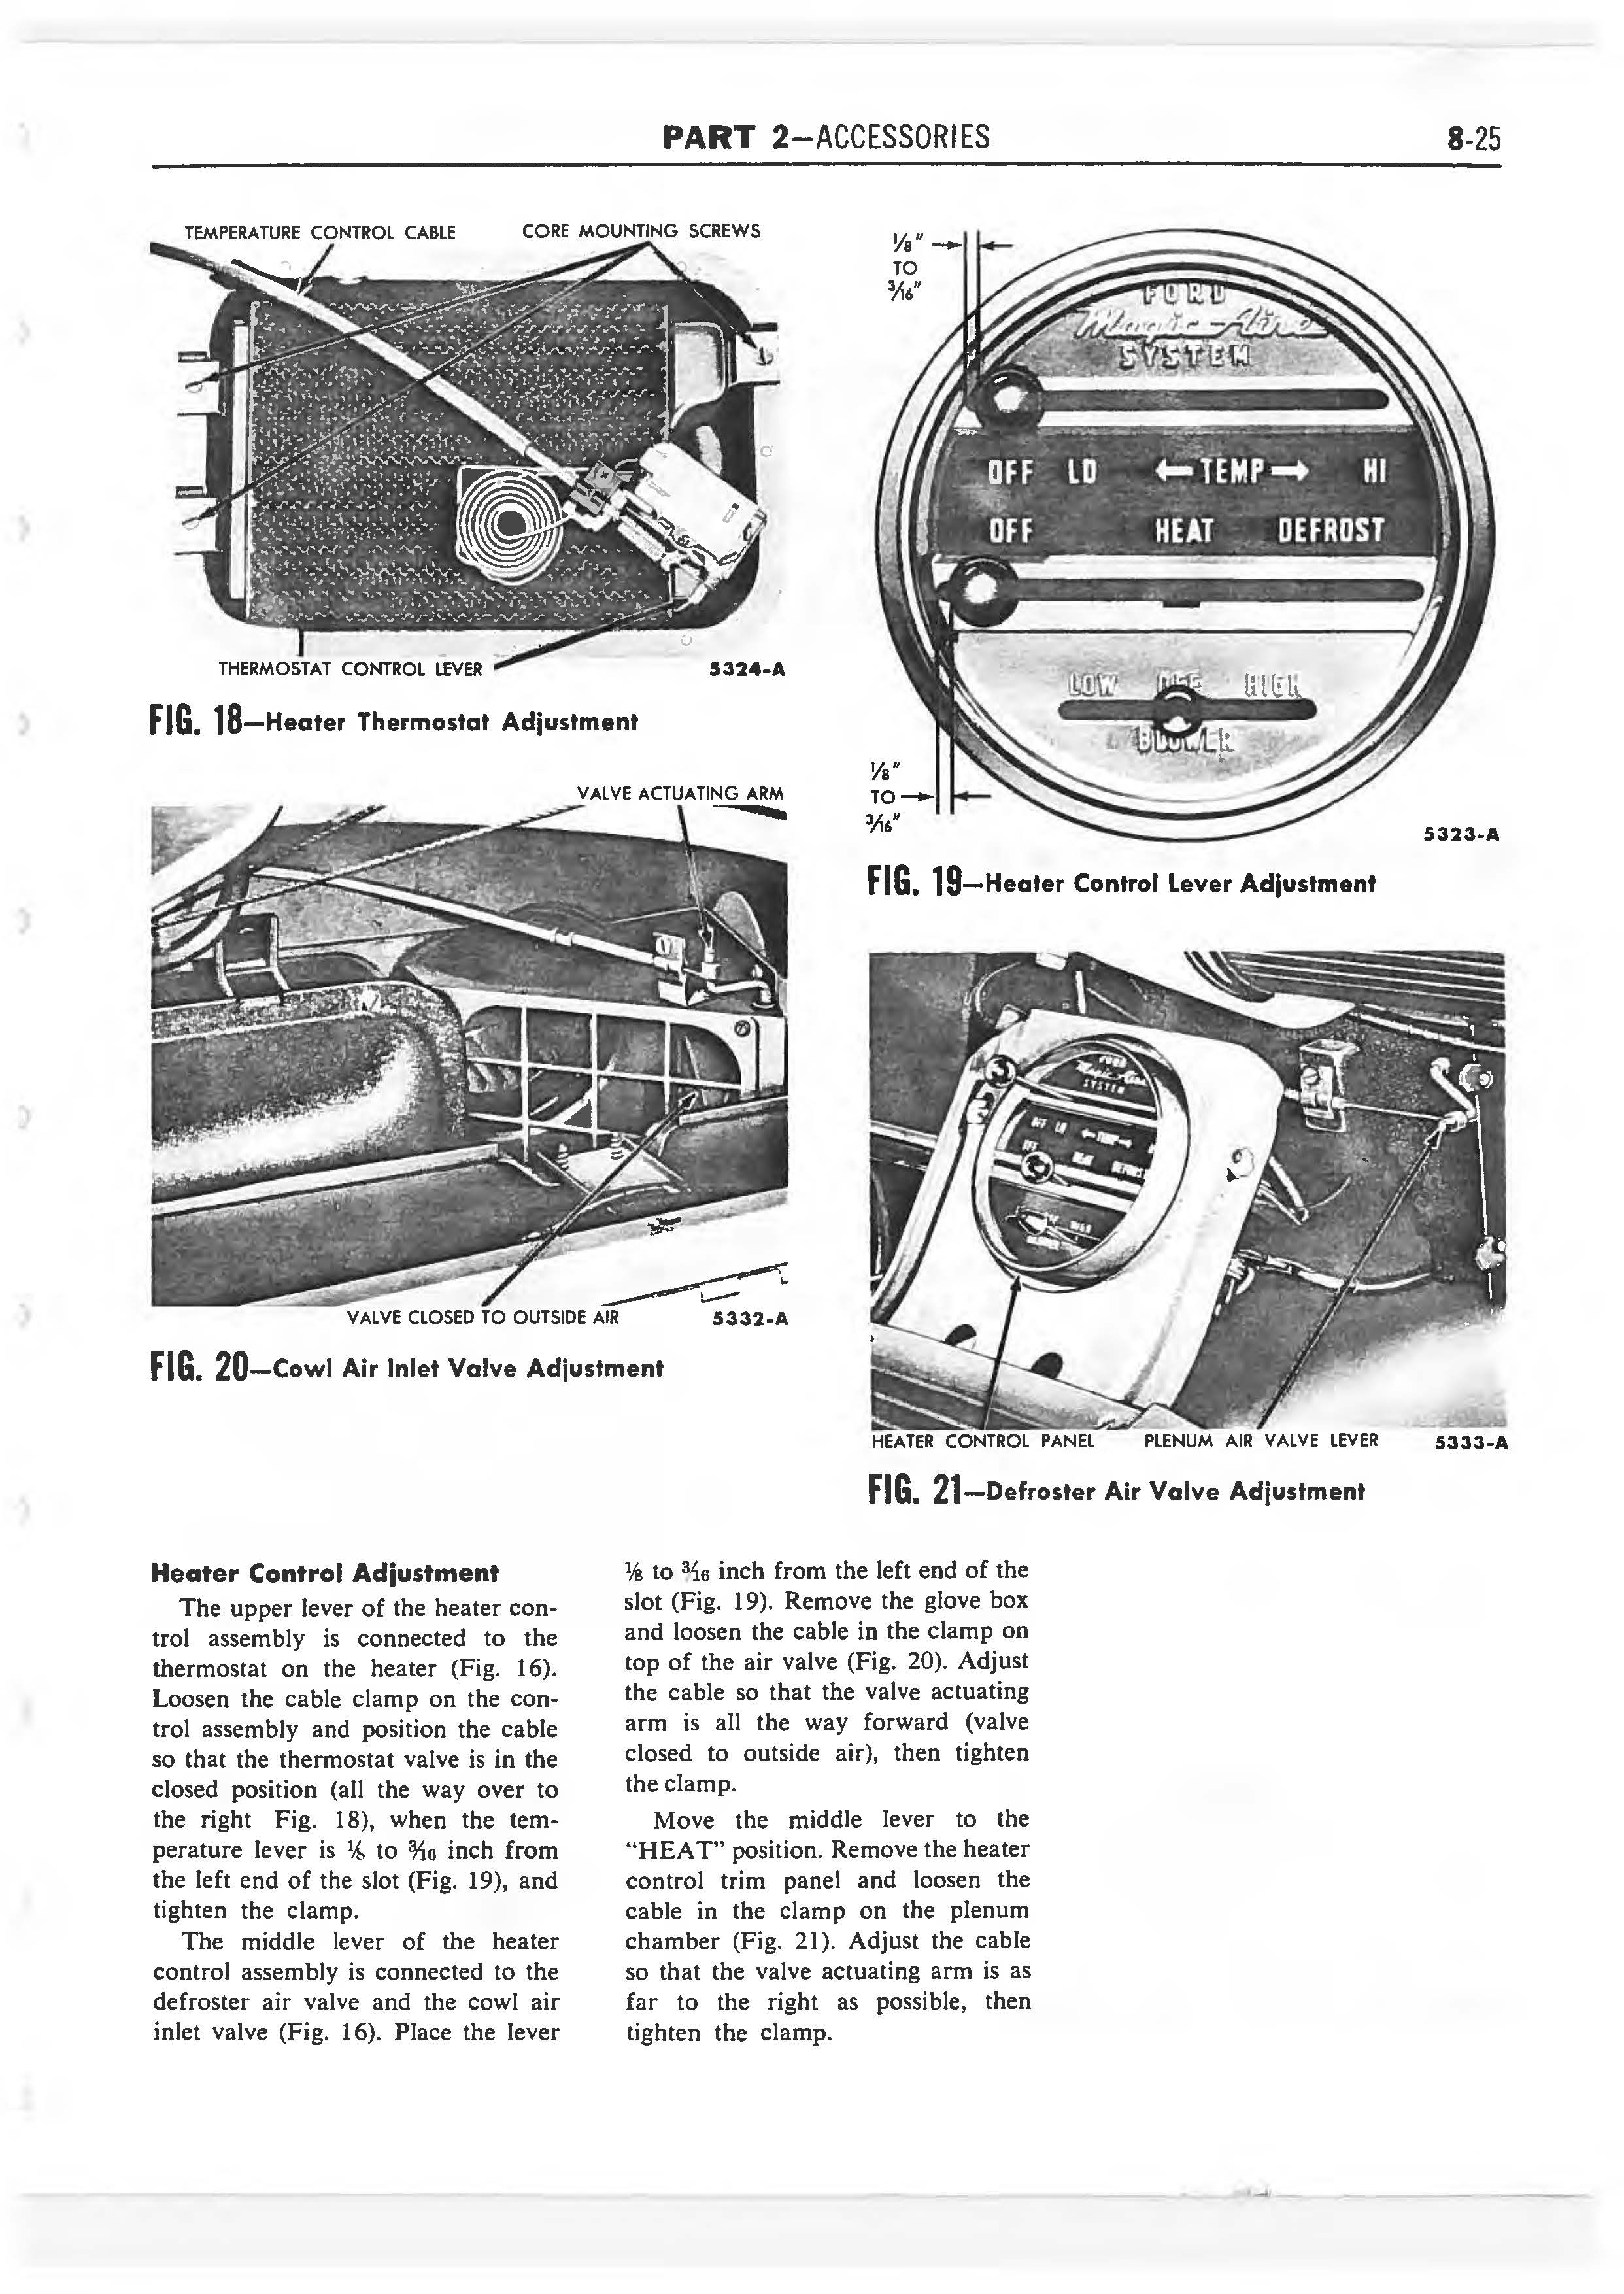 1958 Ford Thunderbird Shop Manual page 290 of 360